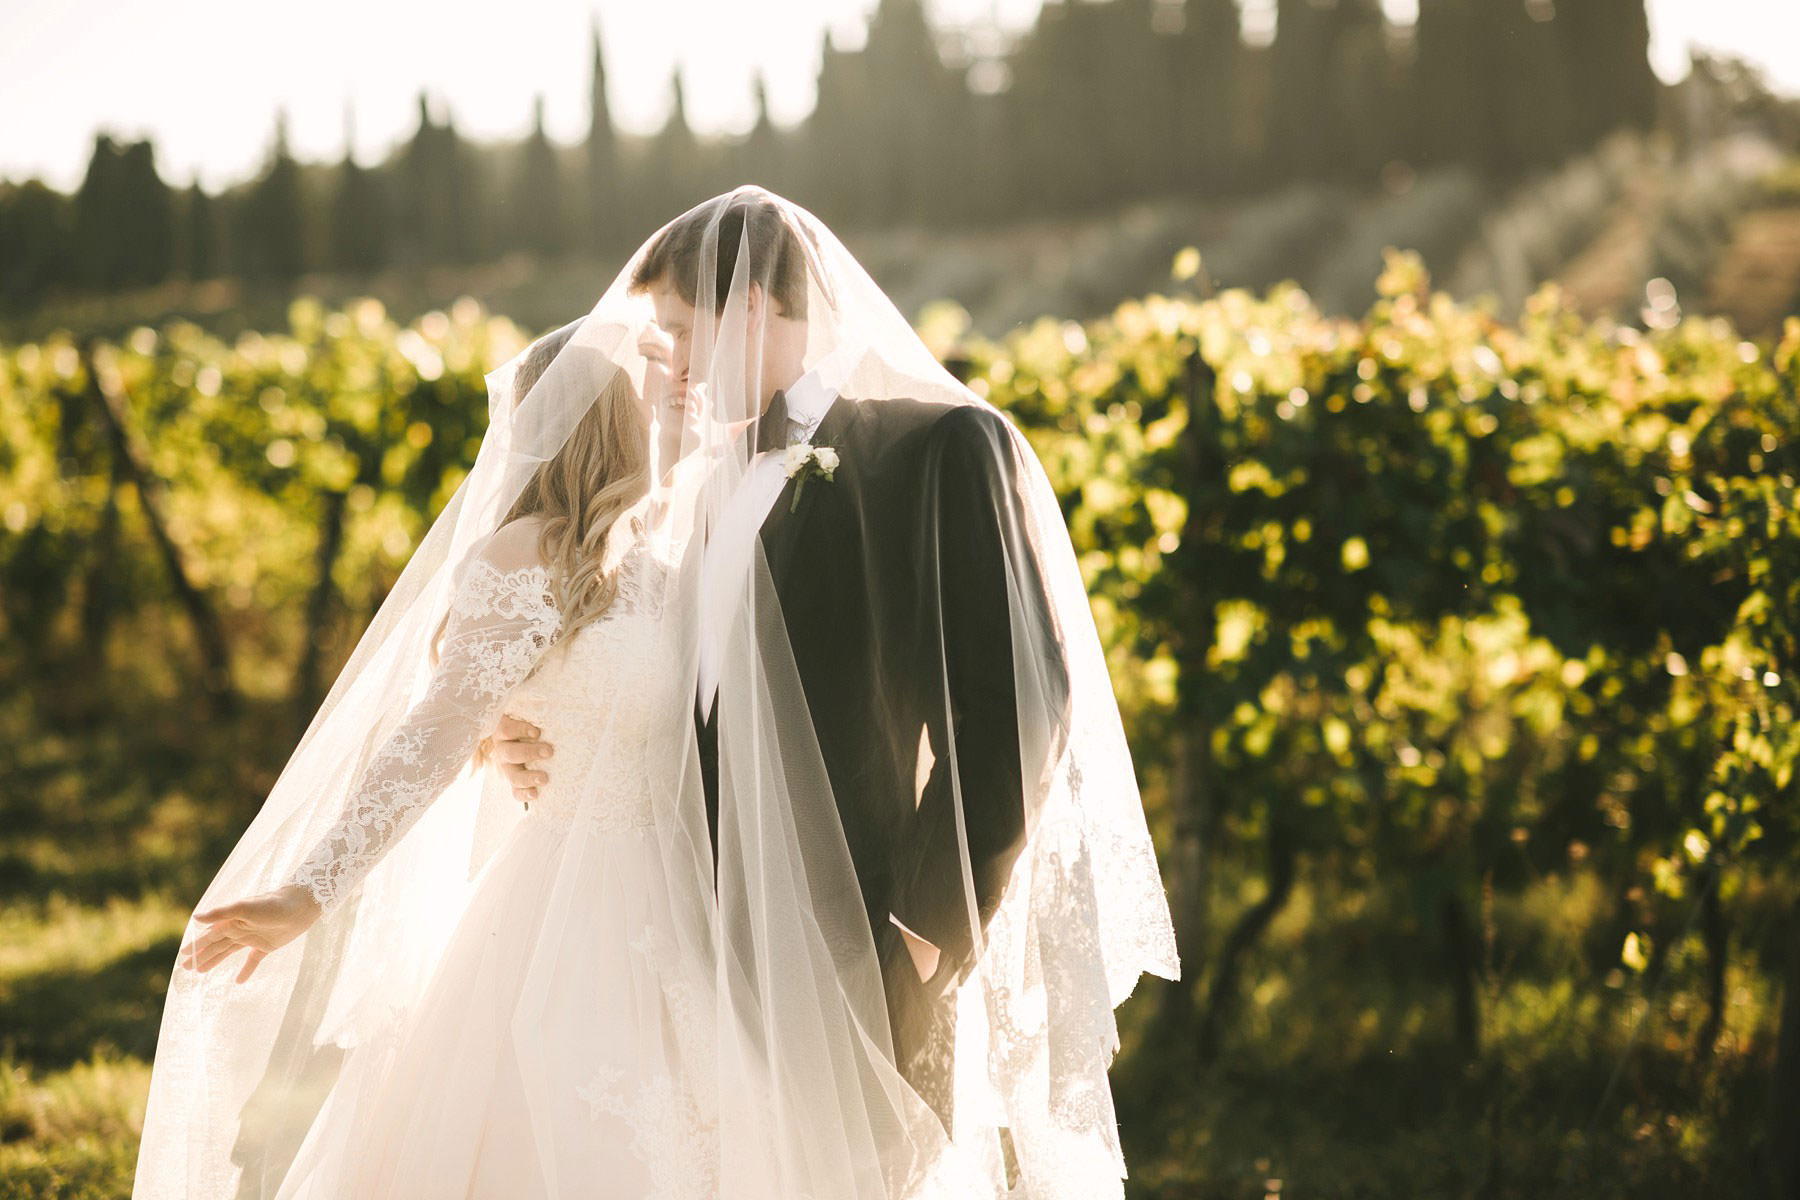 Lovely moment and wedding bride and groom portrait in Tuscany vineyard near Villa Mangiacane, Chianti. Intimate destination wedding